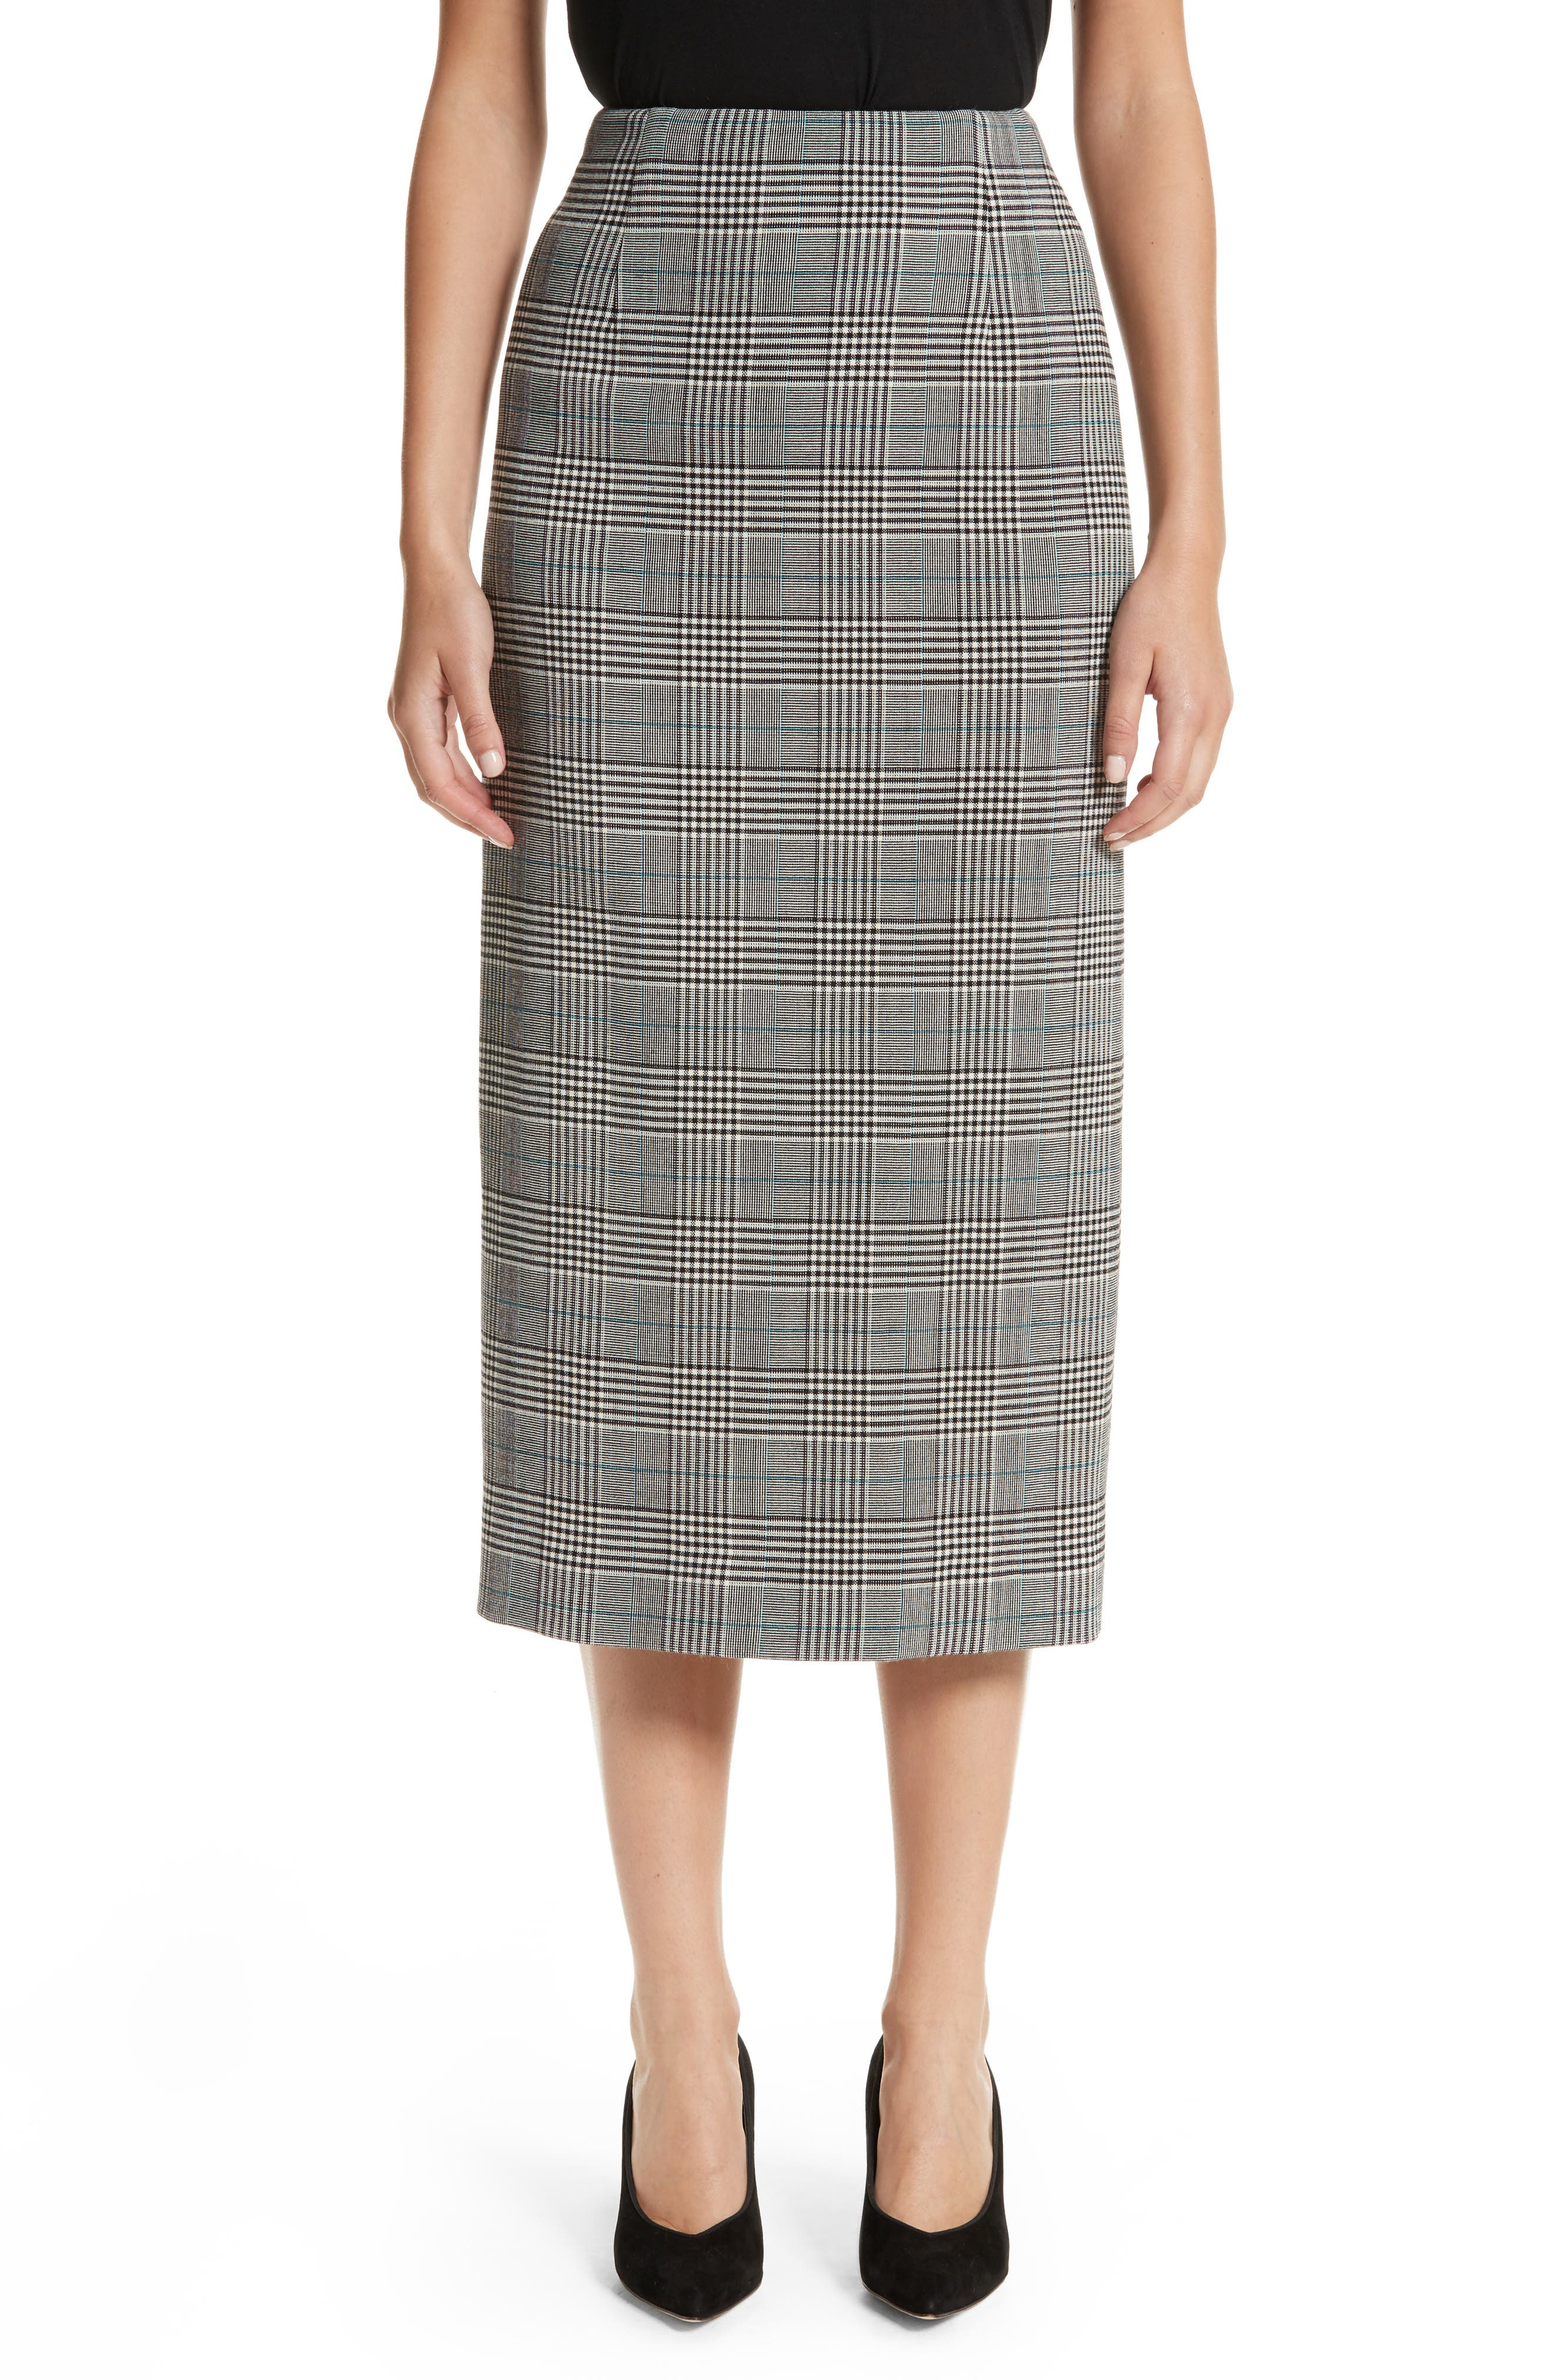 Alternate Image 1 Selected - Victoria Beckham Prince of Wales High Waist Pencil Skirt